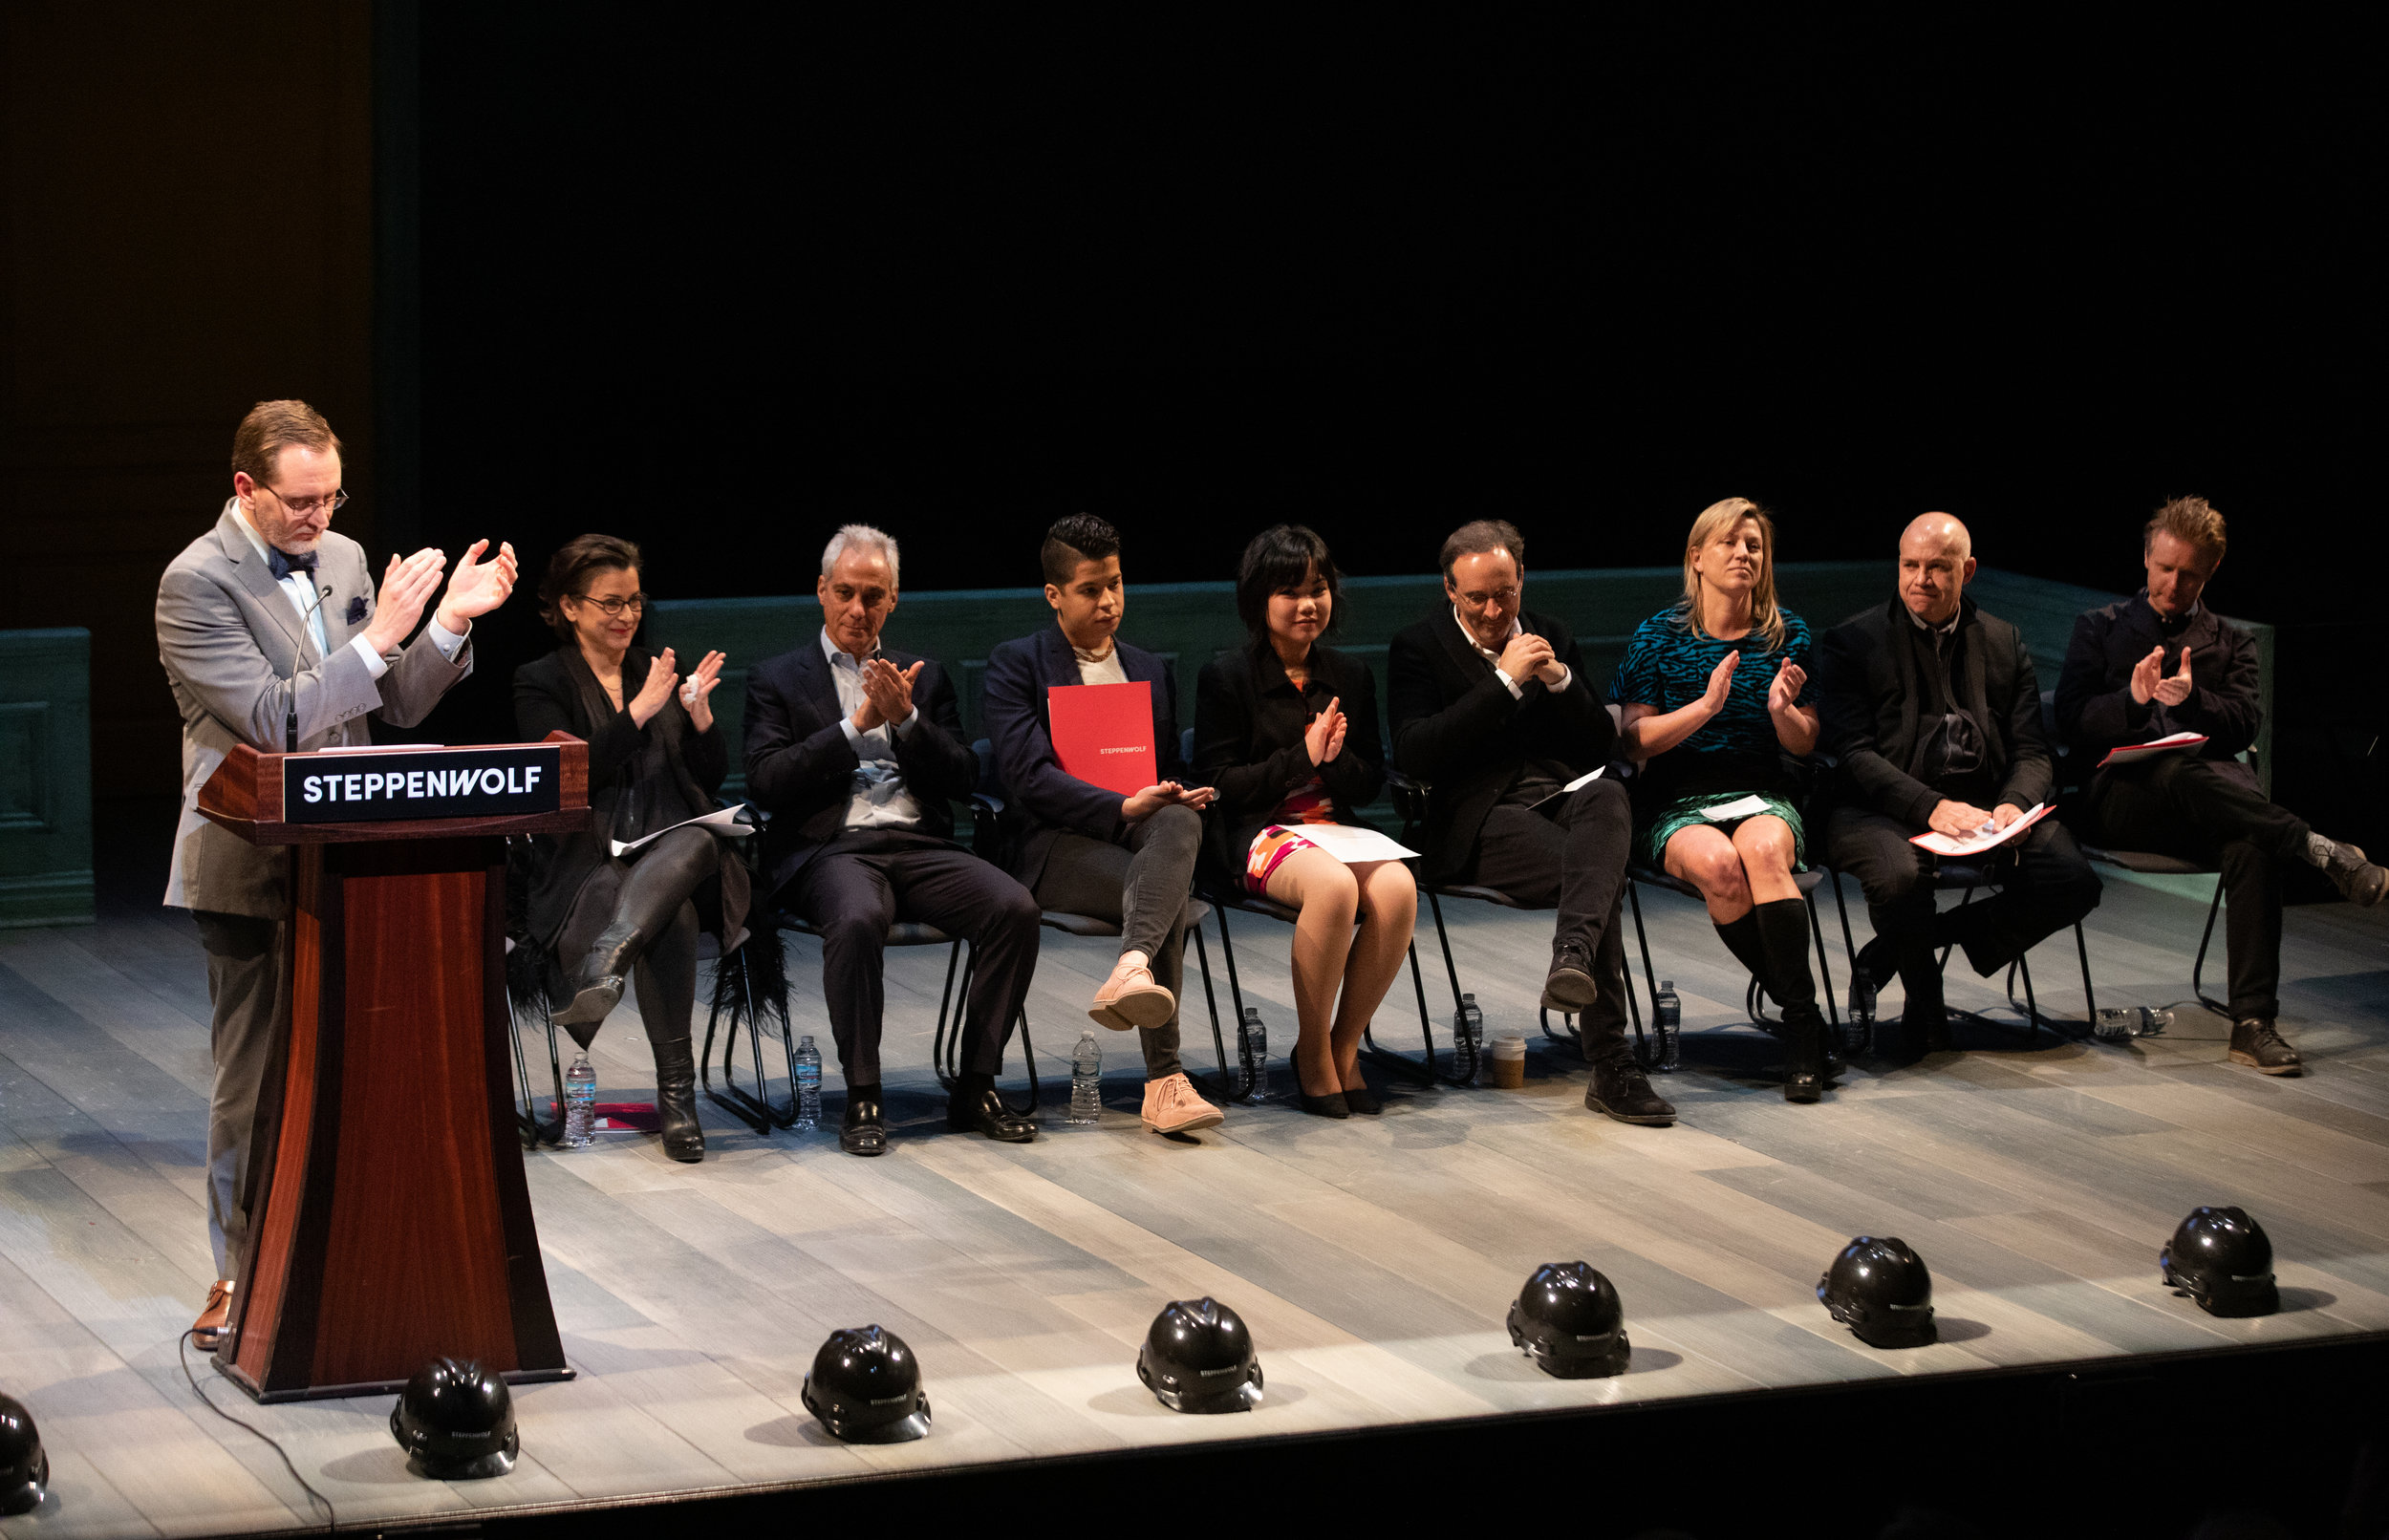 Steppenwolf Executive Director David Schmitz shares remarks at the company's groundbreaking event. Pictured on stage with David (L to R): Artistic Director and ensemble member Anna D.Shapiro, Mayor Rahm Emanuel, Steppenwolf Young Adult Council alum Brandon Rivera and current member Maiya Swedberg, Campaign Co-Chairs Eric Lefkofsky & Nora Daley, Gordon Gill architect with Adrian Smith + Gordon Gill Architecture, and Gavin Green theater designer.  Photo Credit: Kyle Flubacker